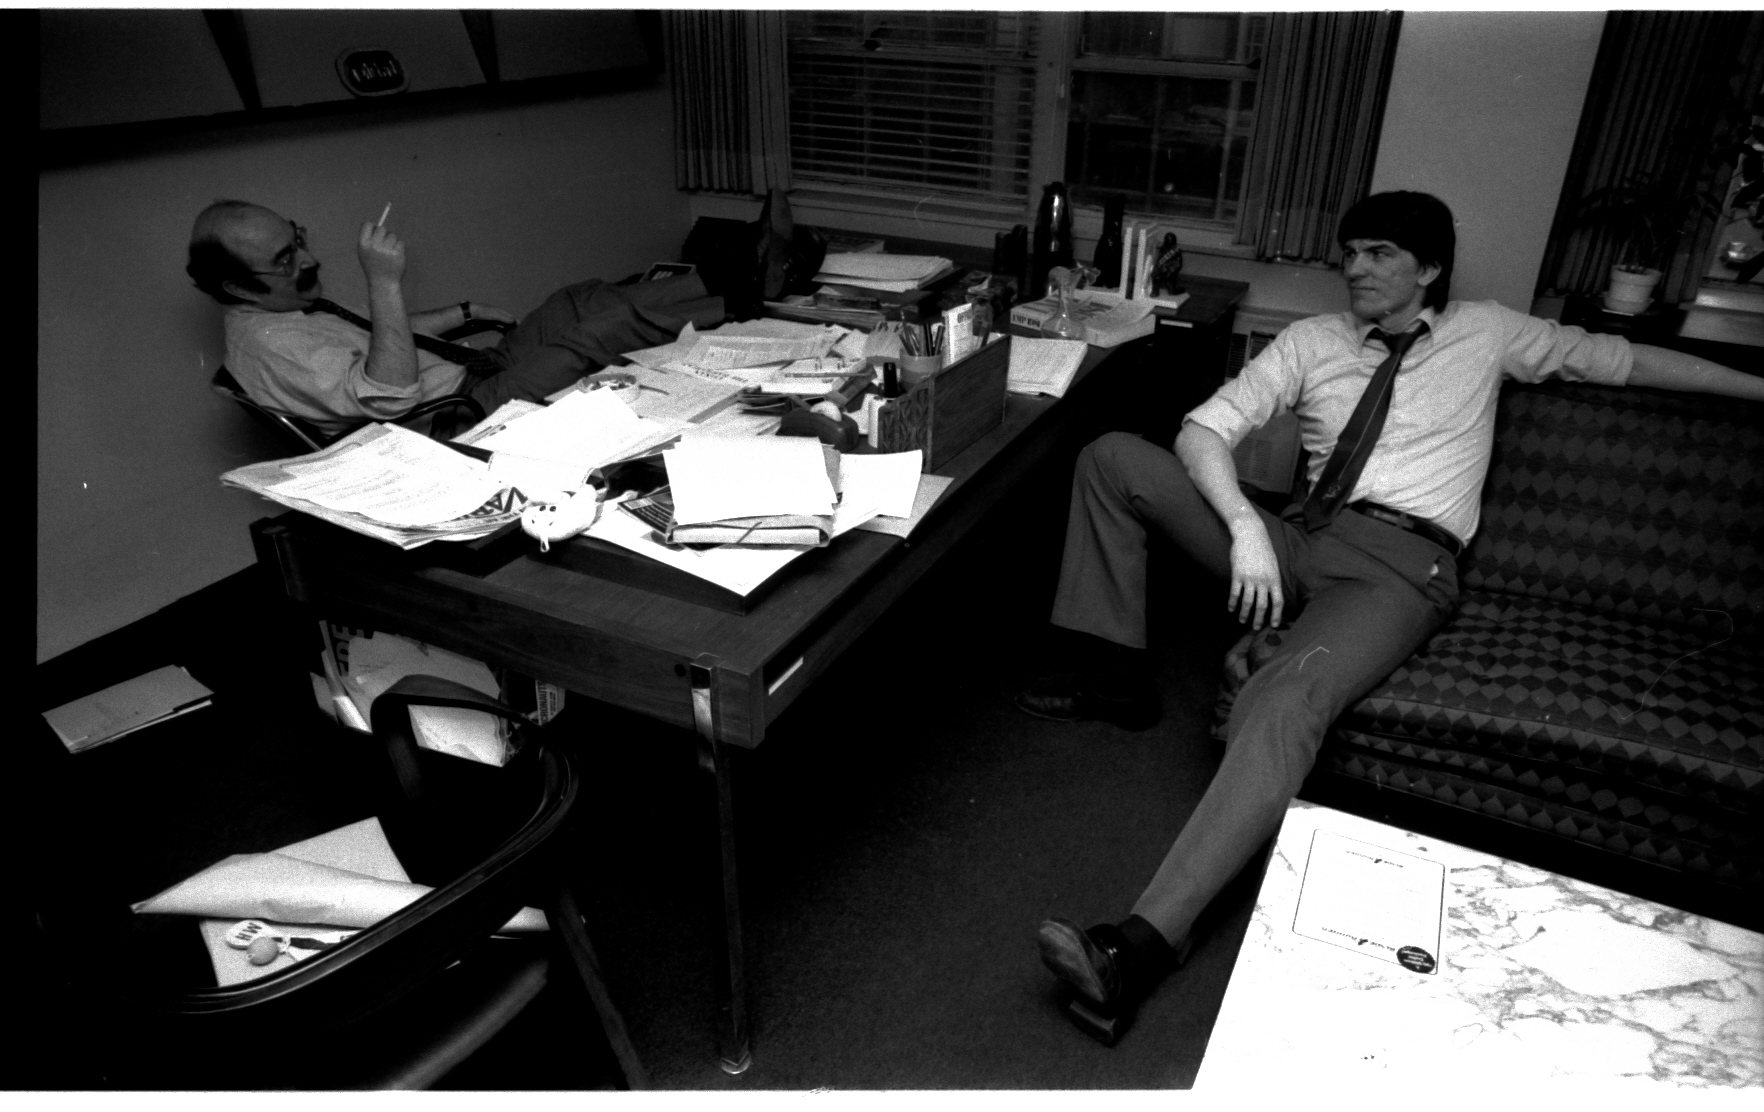 The calm after the storm. A peaceful moment between Mike Hobson and Jim Shooter in Mike's spacious corner office. That damned couch has been at Marvel since I was a downy-cheeked messenger boy-- turning up in Stan's offices like a bad penny, year in, year out. Mike must've lost a bet to have gotten that couch. I'm pretty sure it did not survive the trip downtown...